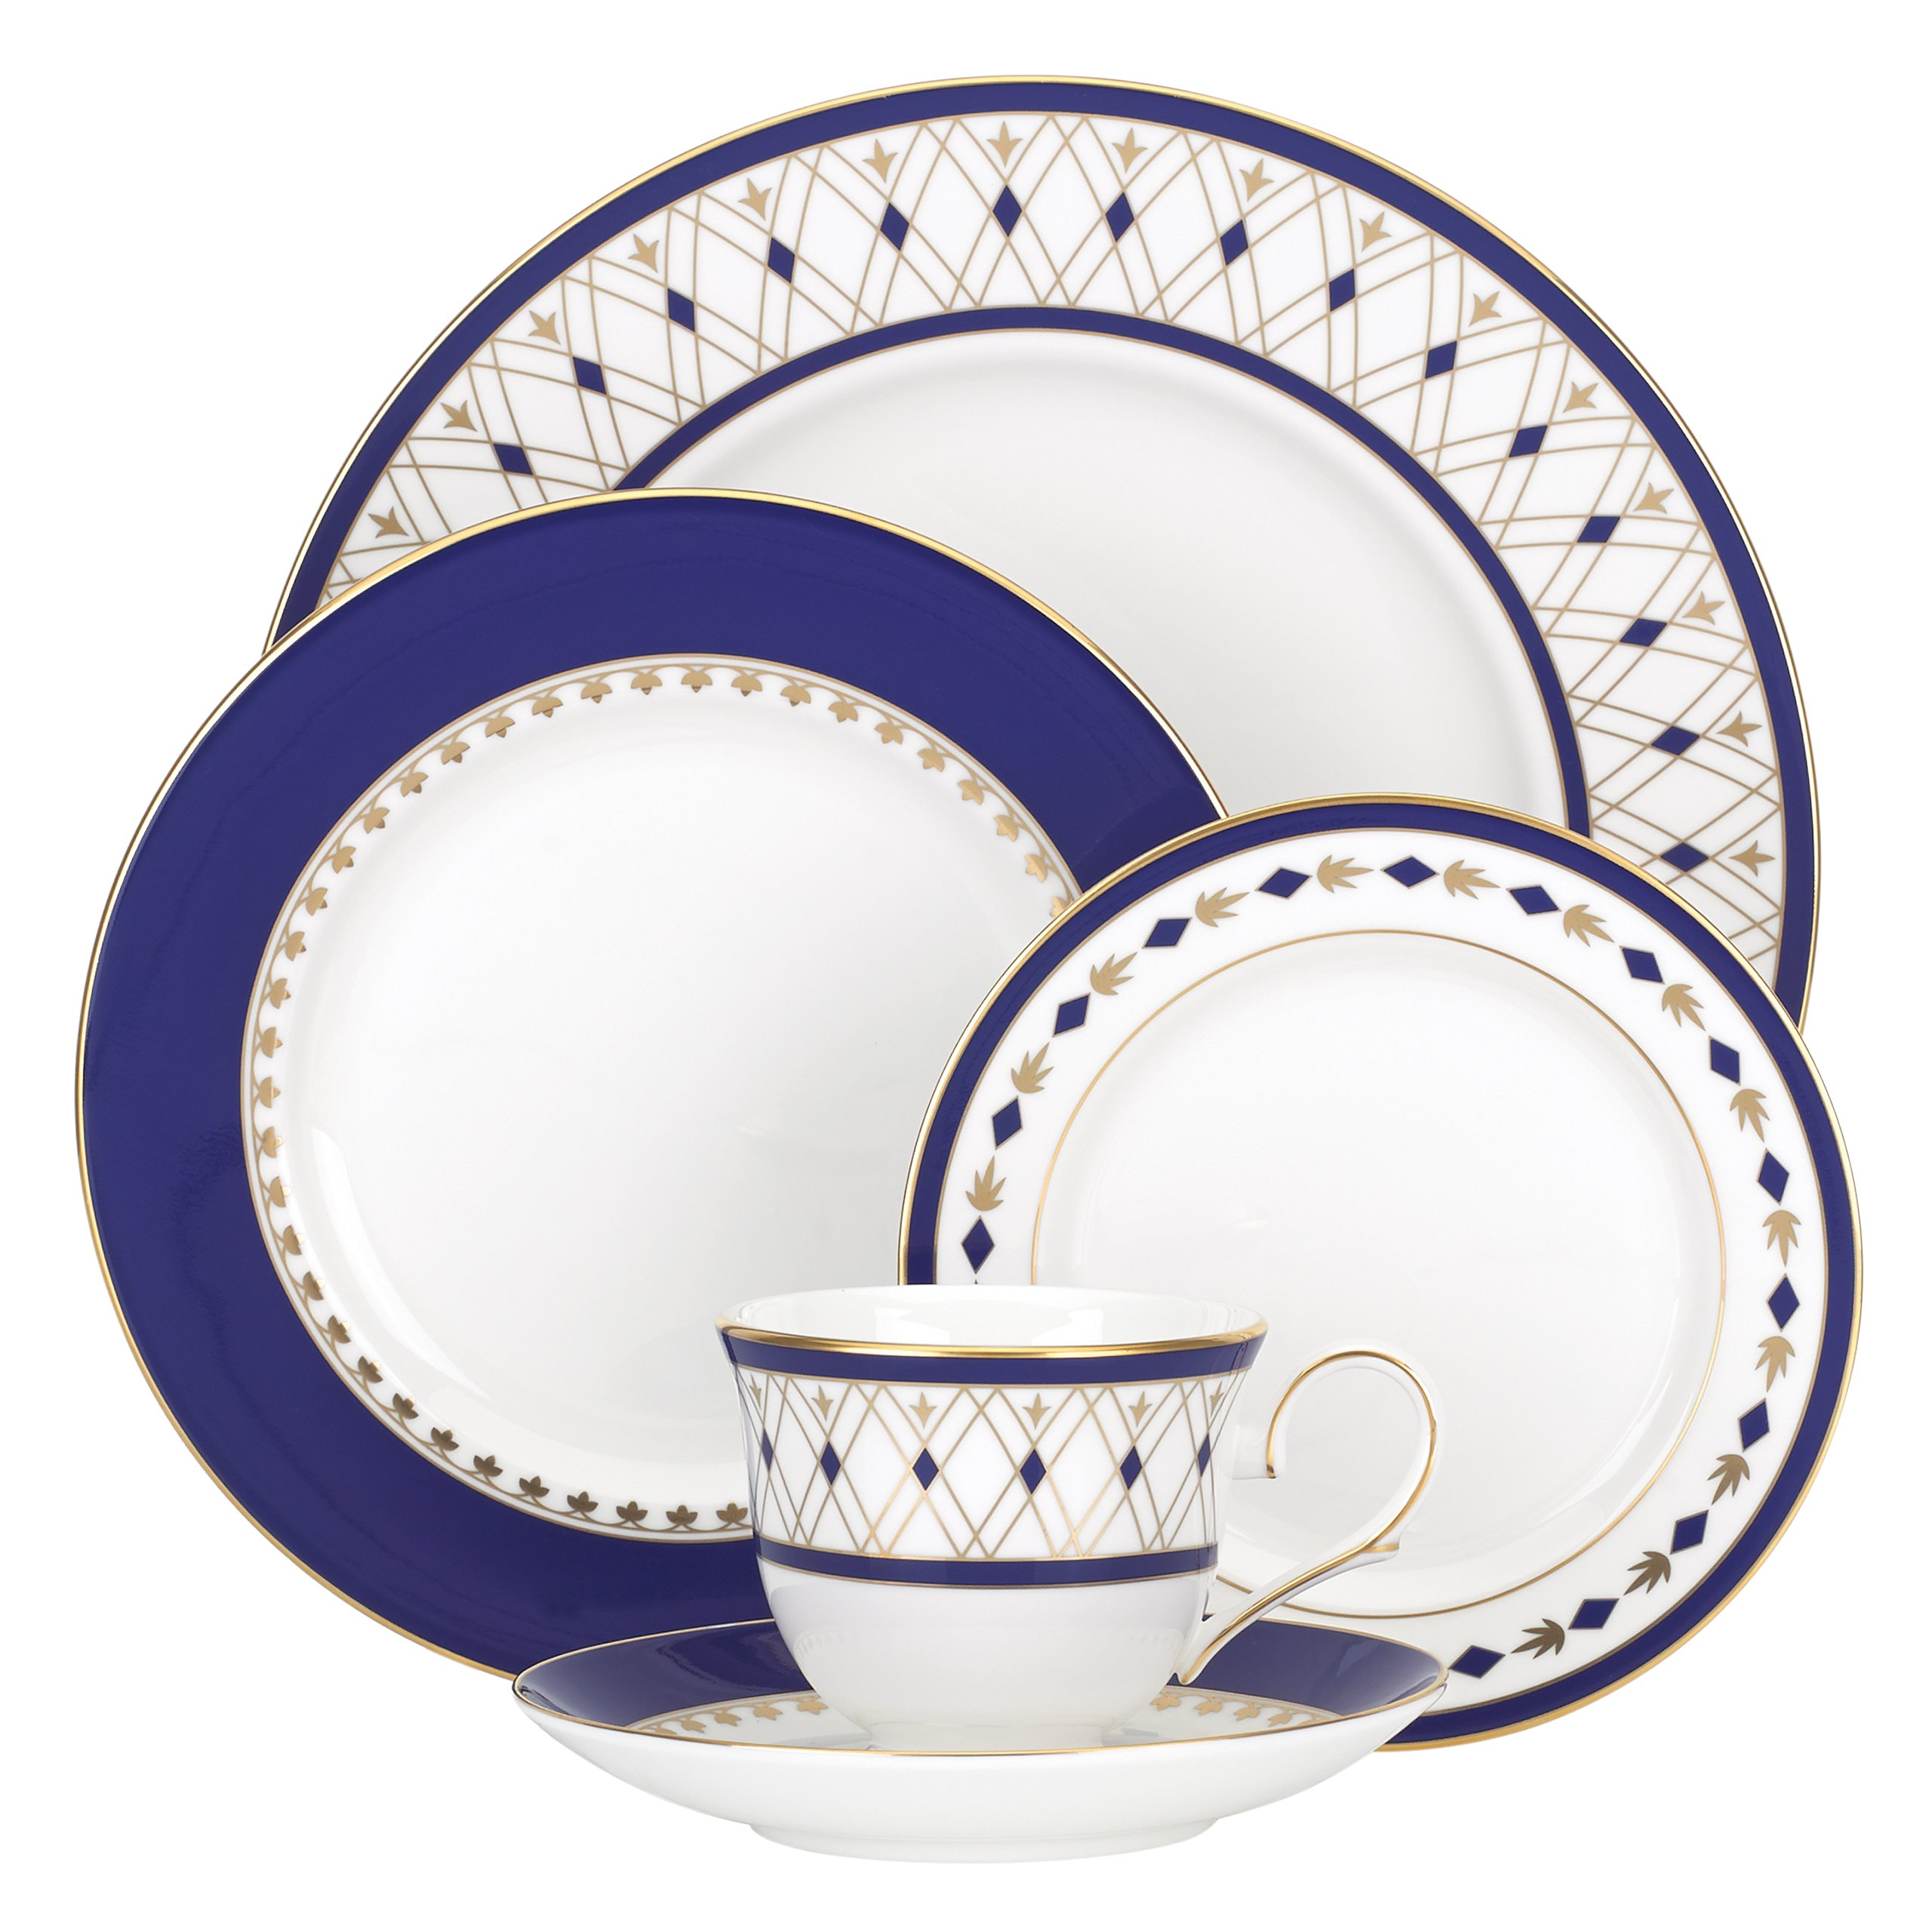 Lenox Royal Grandeur 5 Piece Place Setting, White